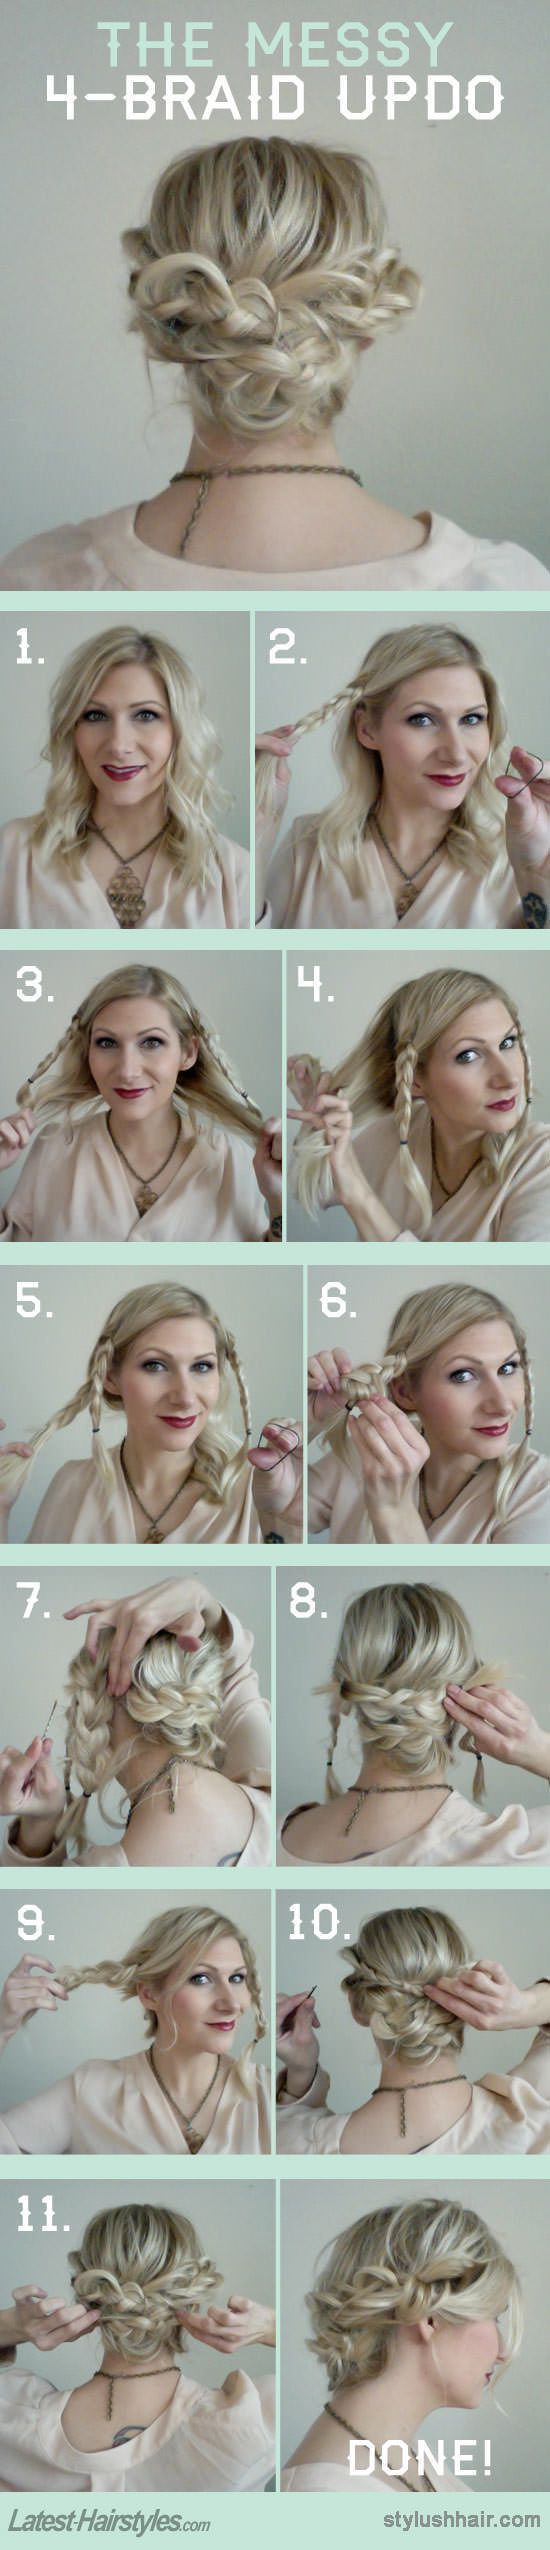 How to the messy braid updo